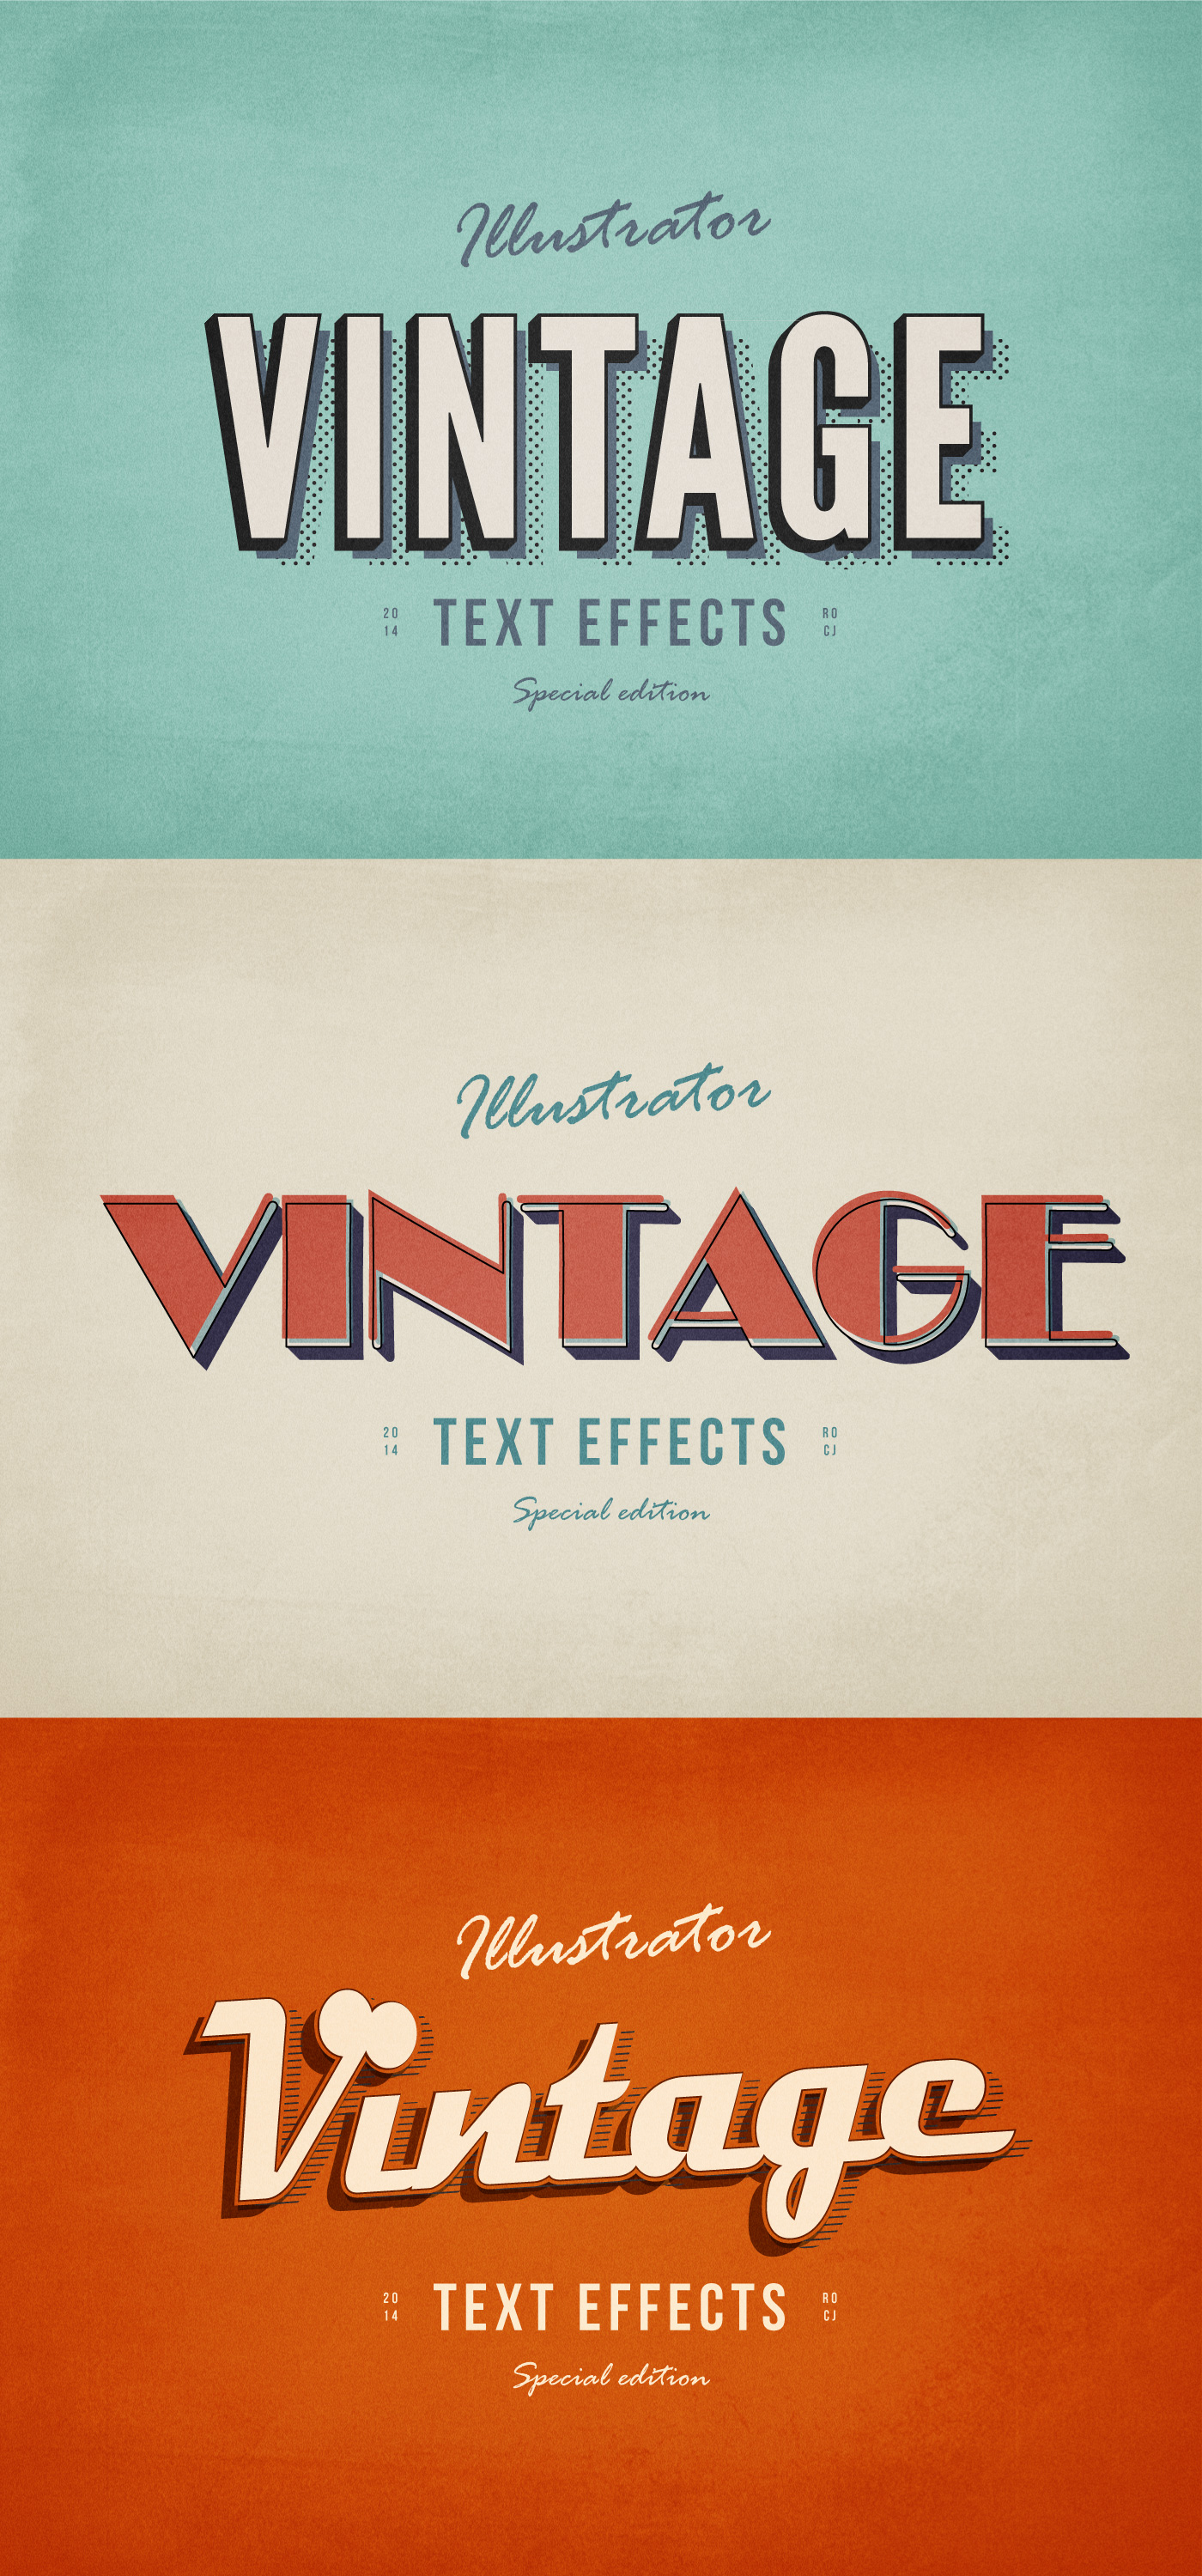 3 Illustrator Vintage Text Effects | GraphicBurger